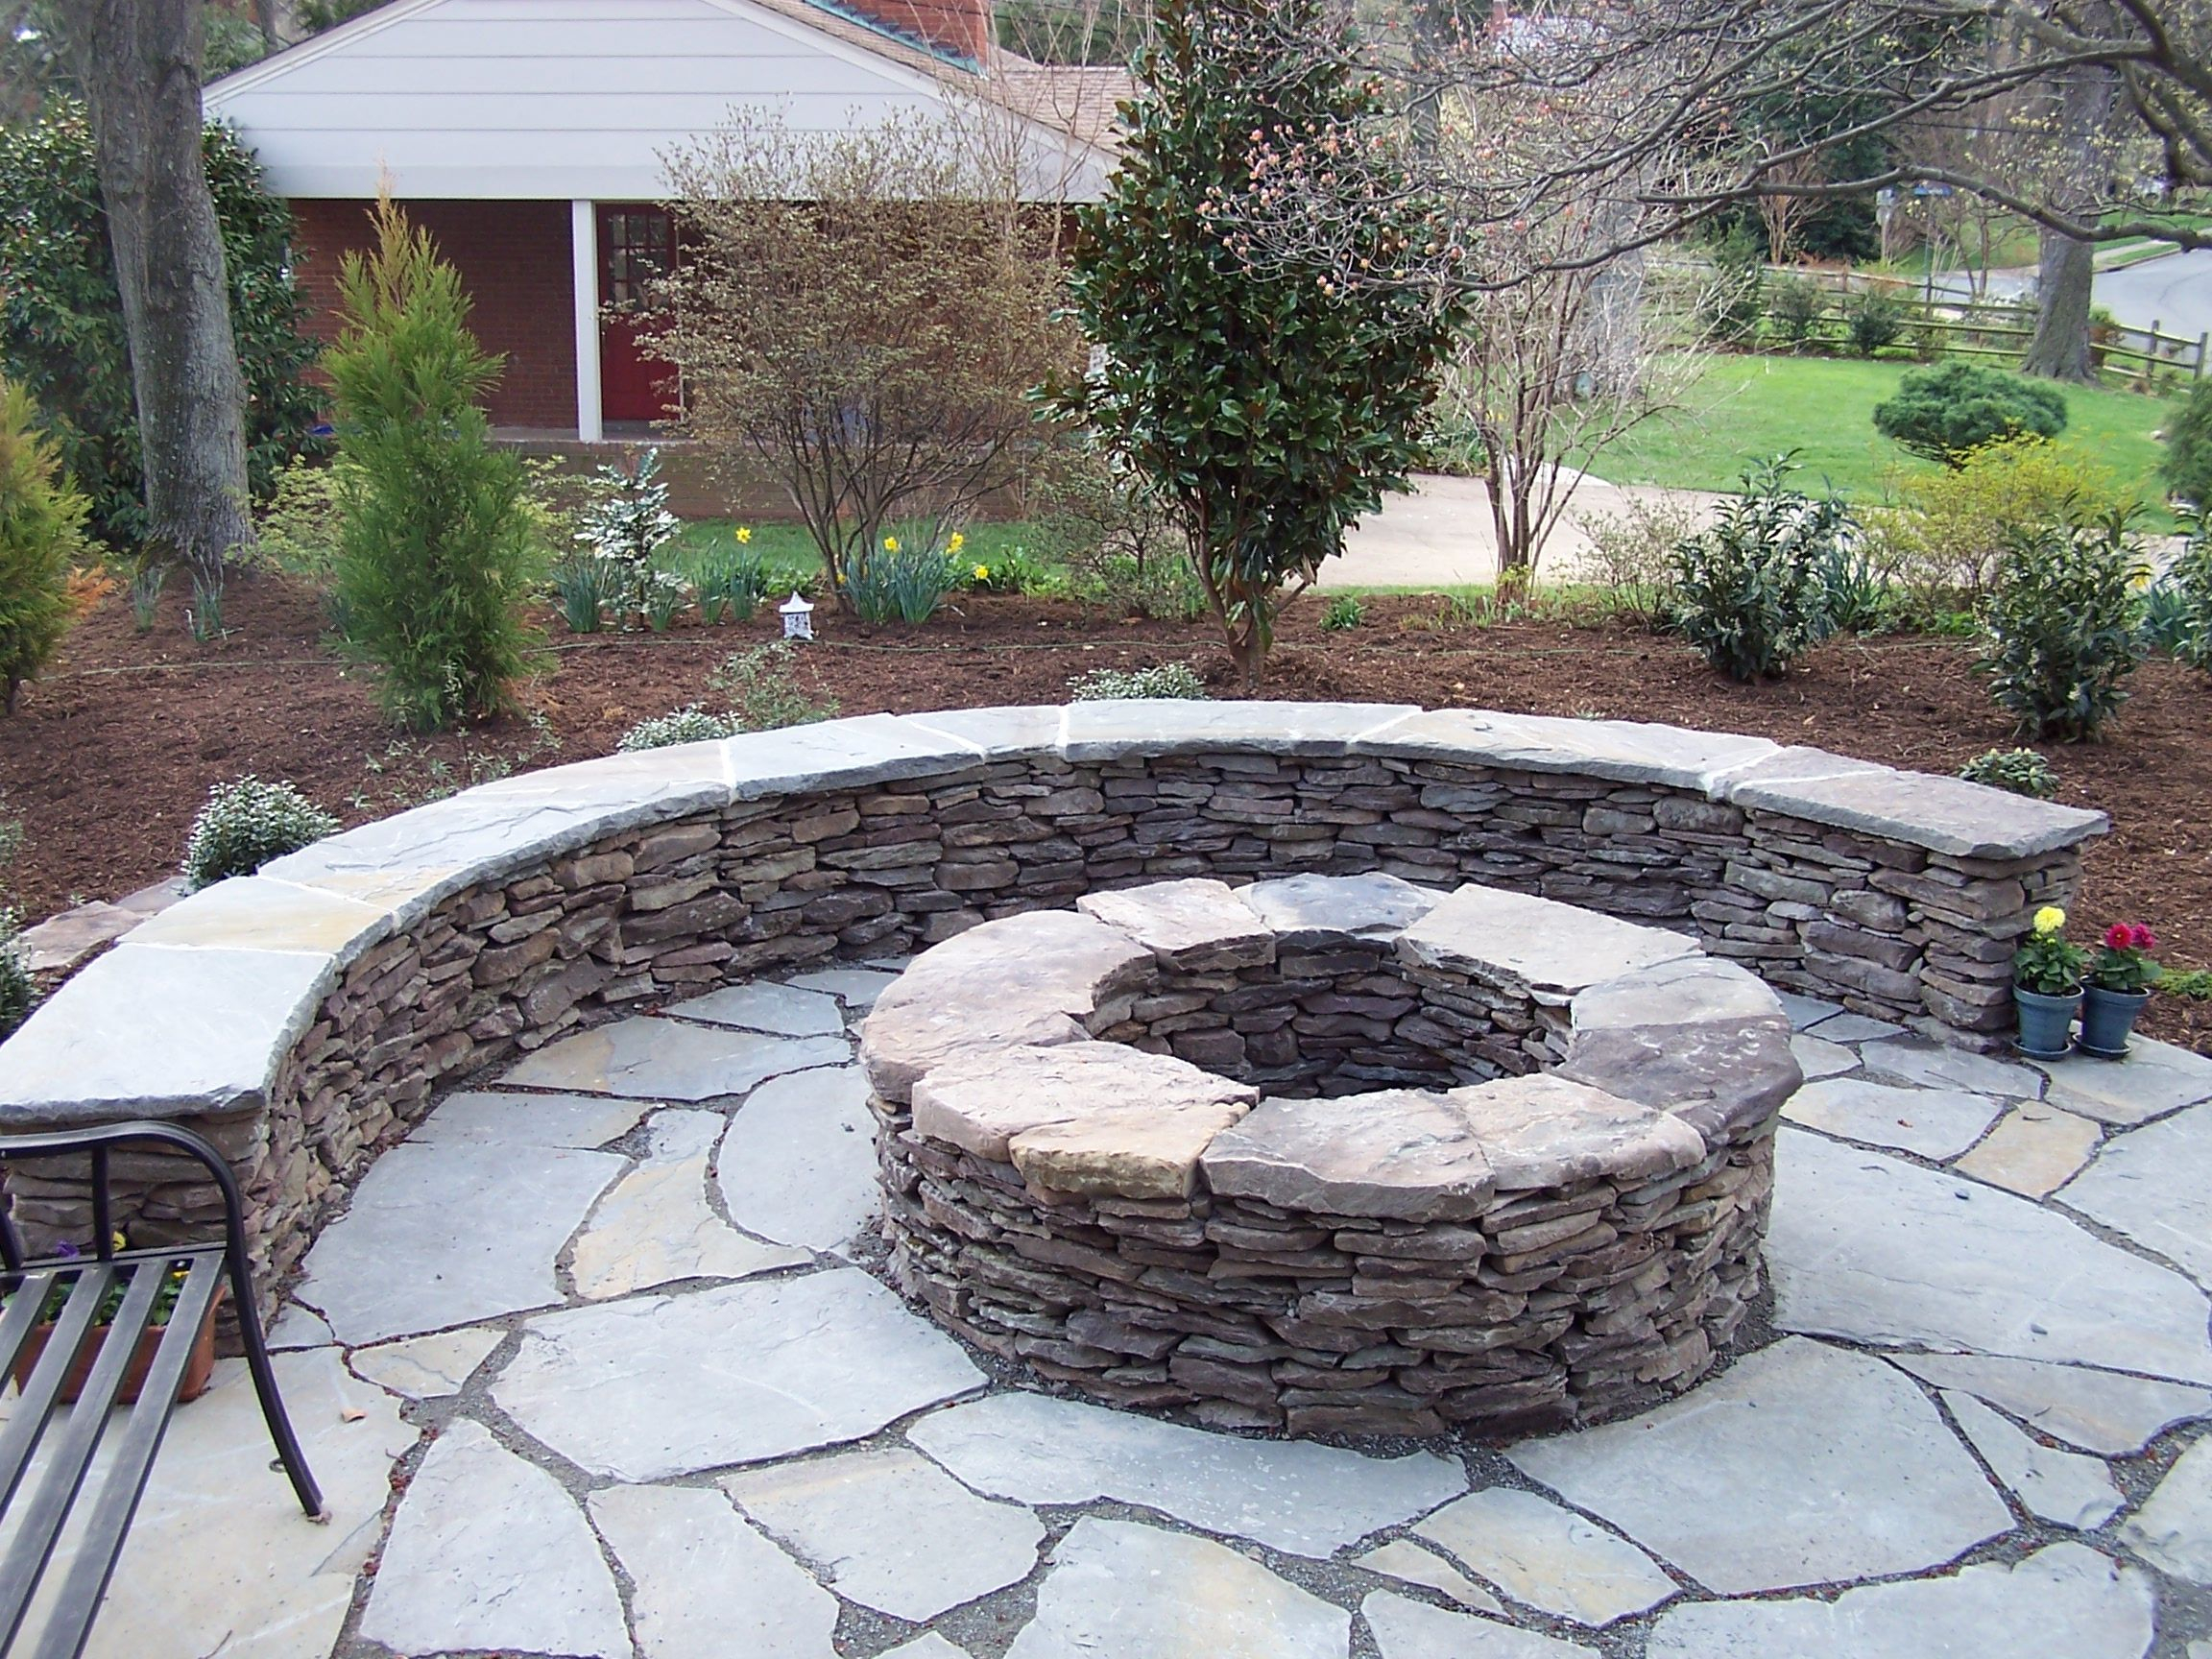 Firepit This Uniquely Shaped Brick Veneered Fire Pit In throughout sizing 2304 X 1728